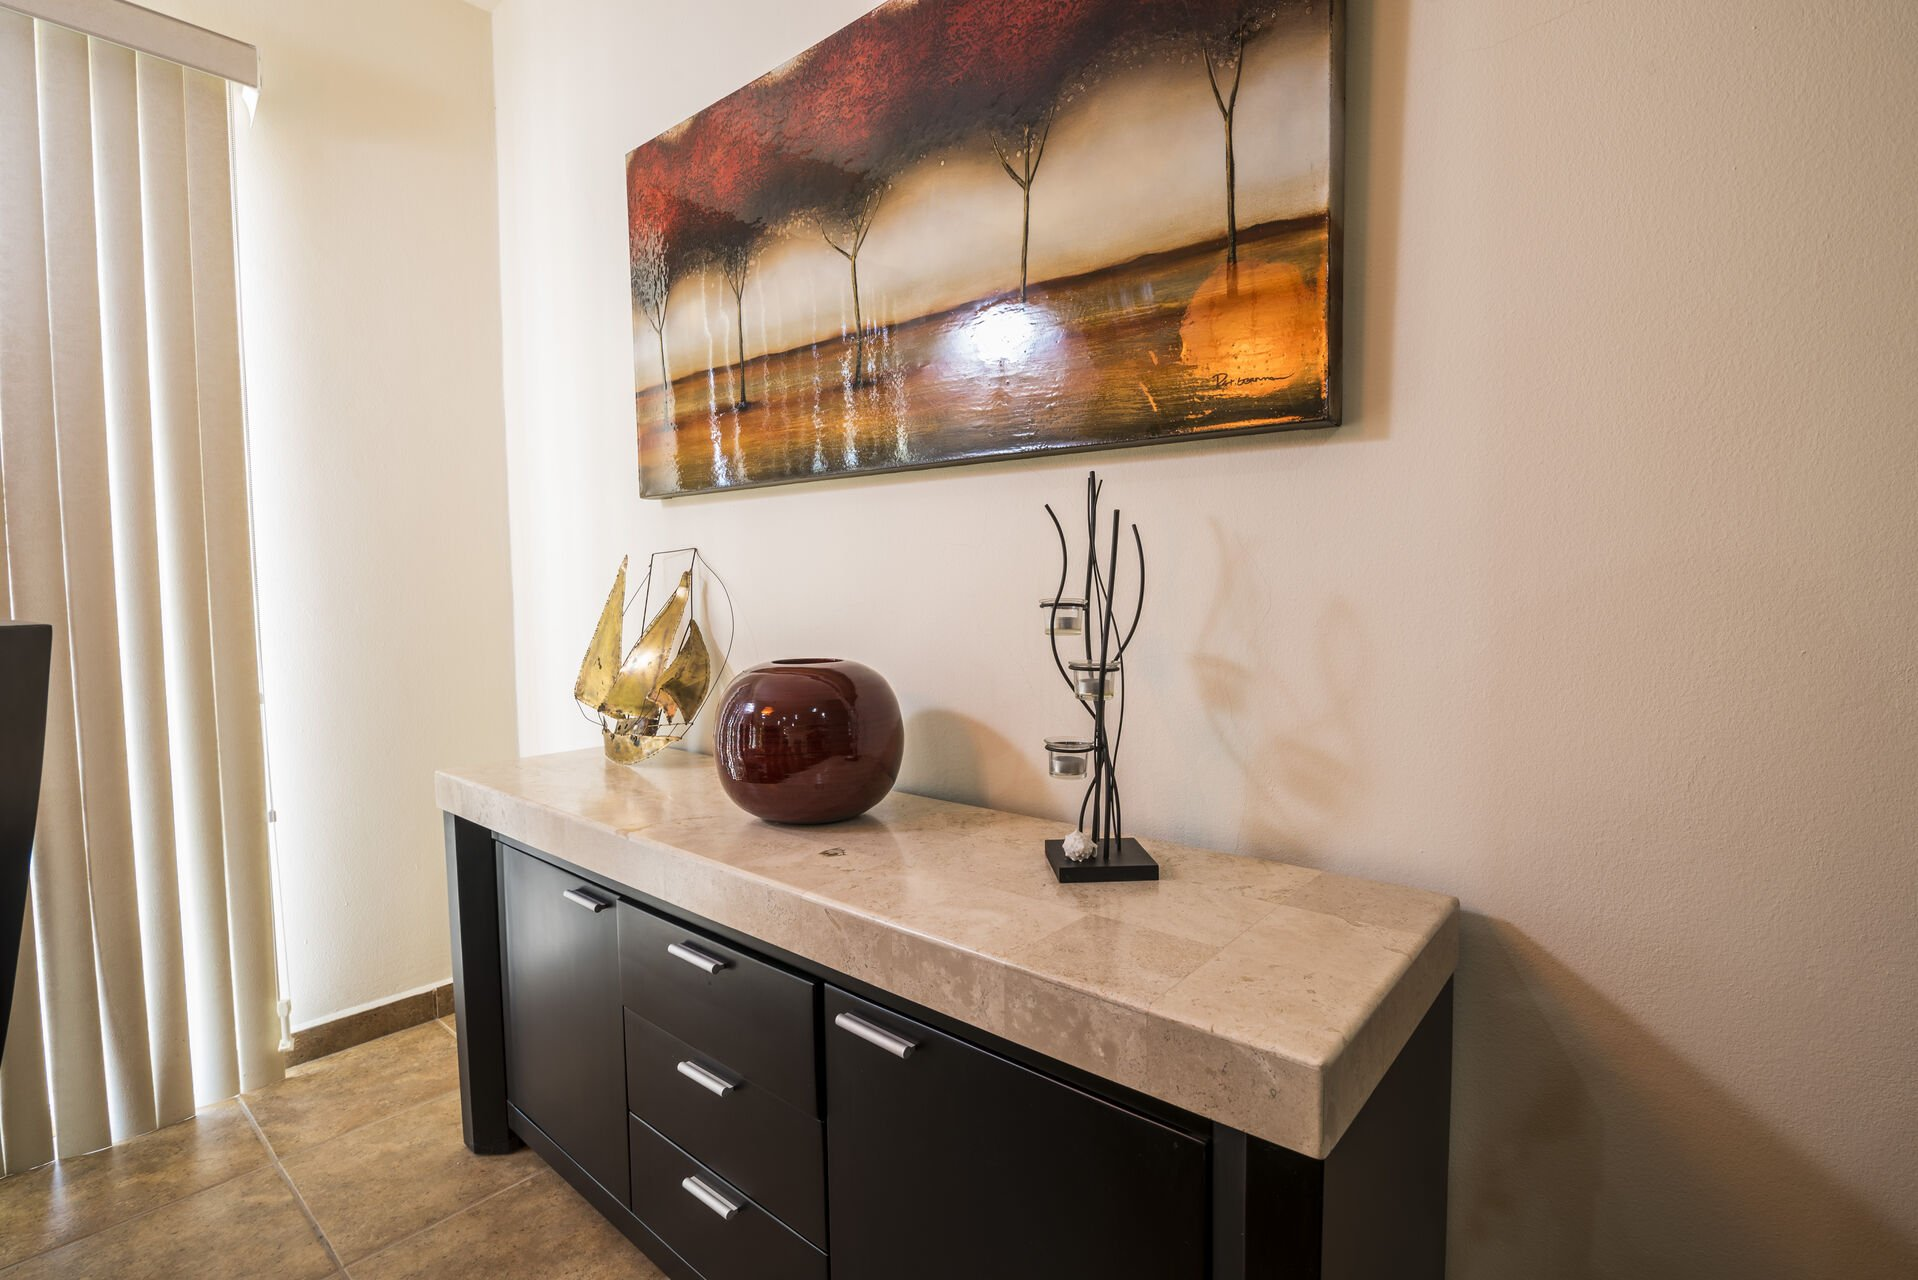 Dining counter